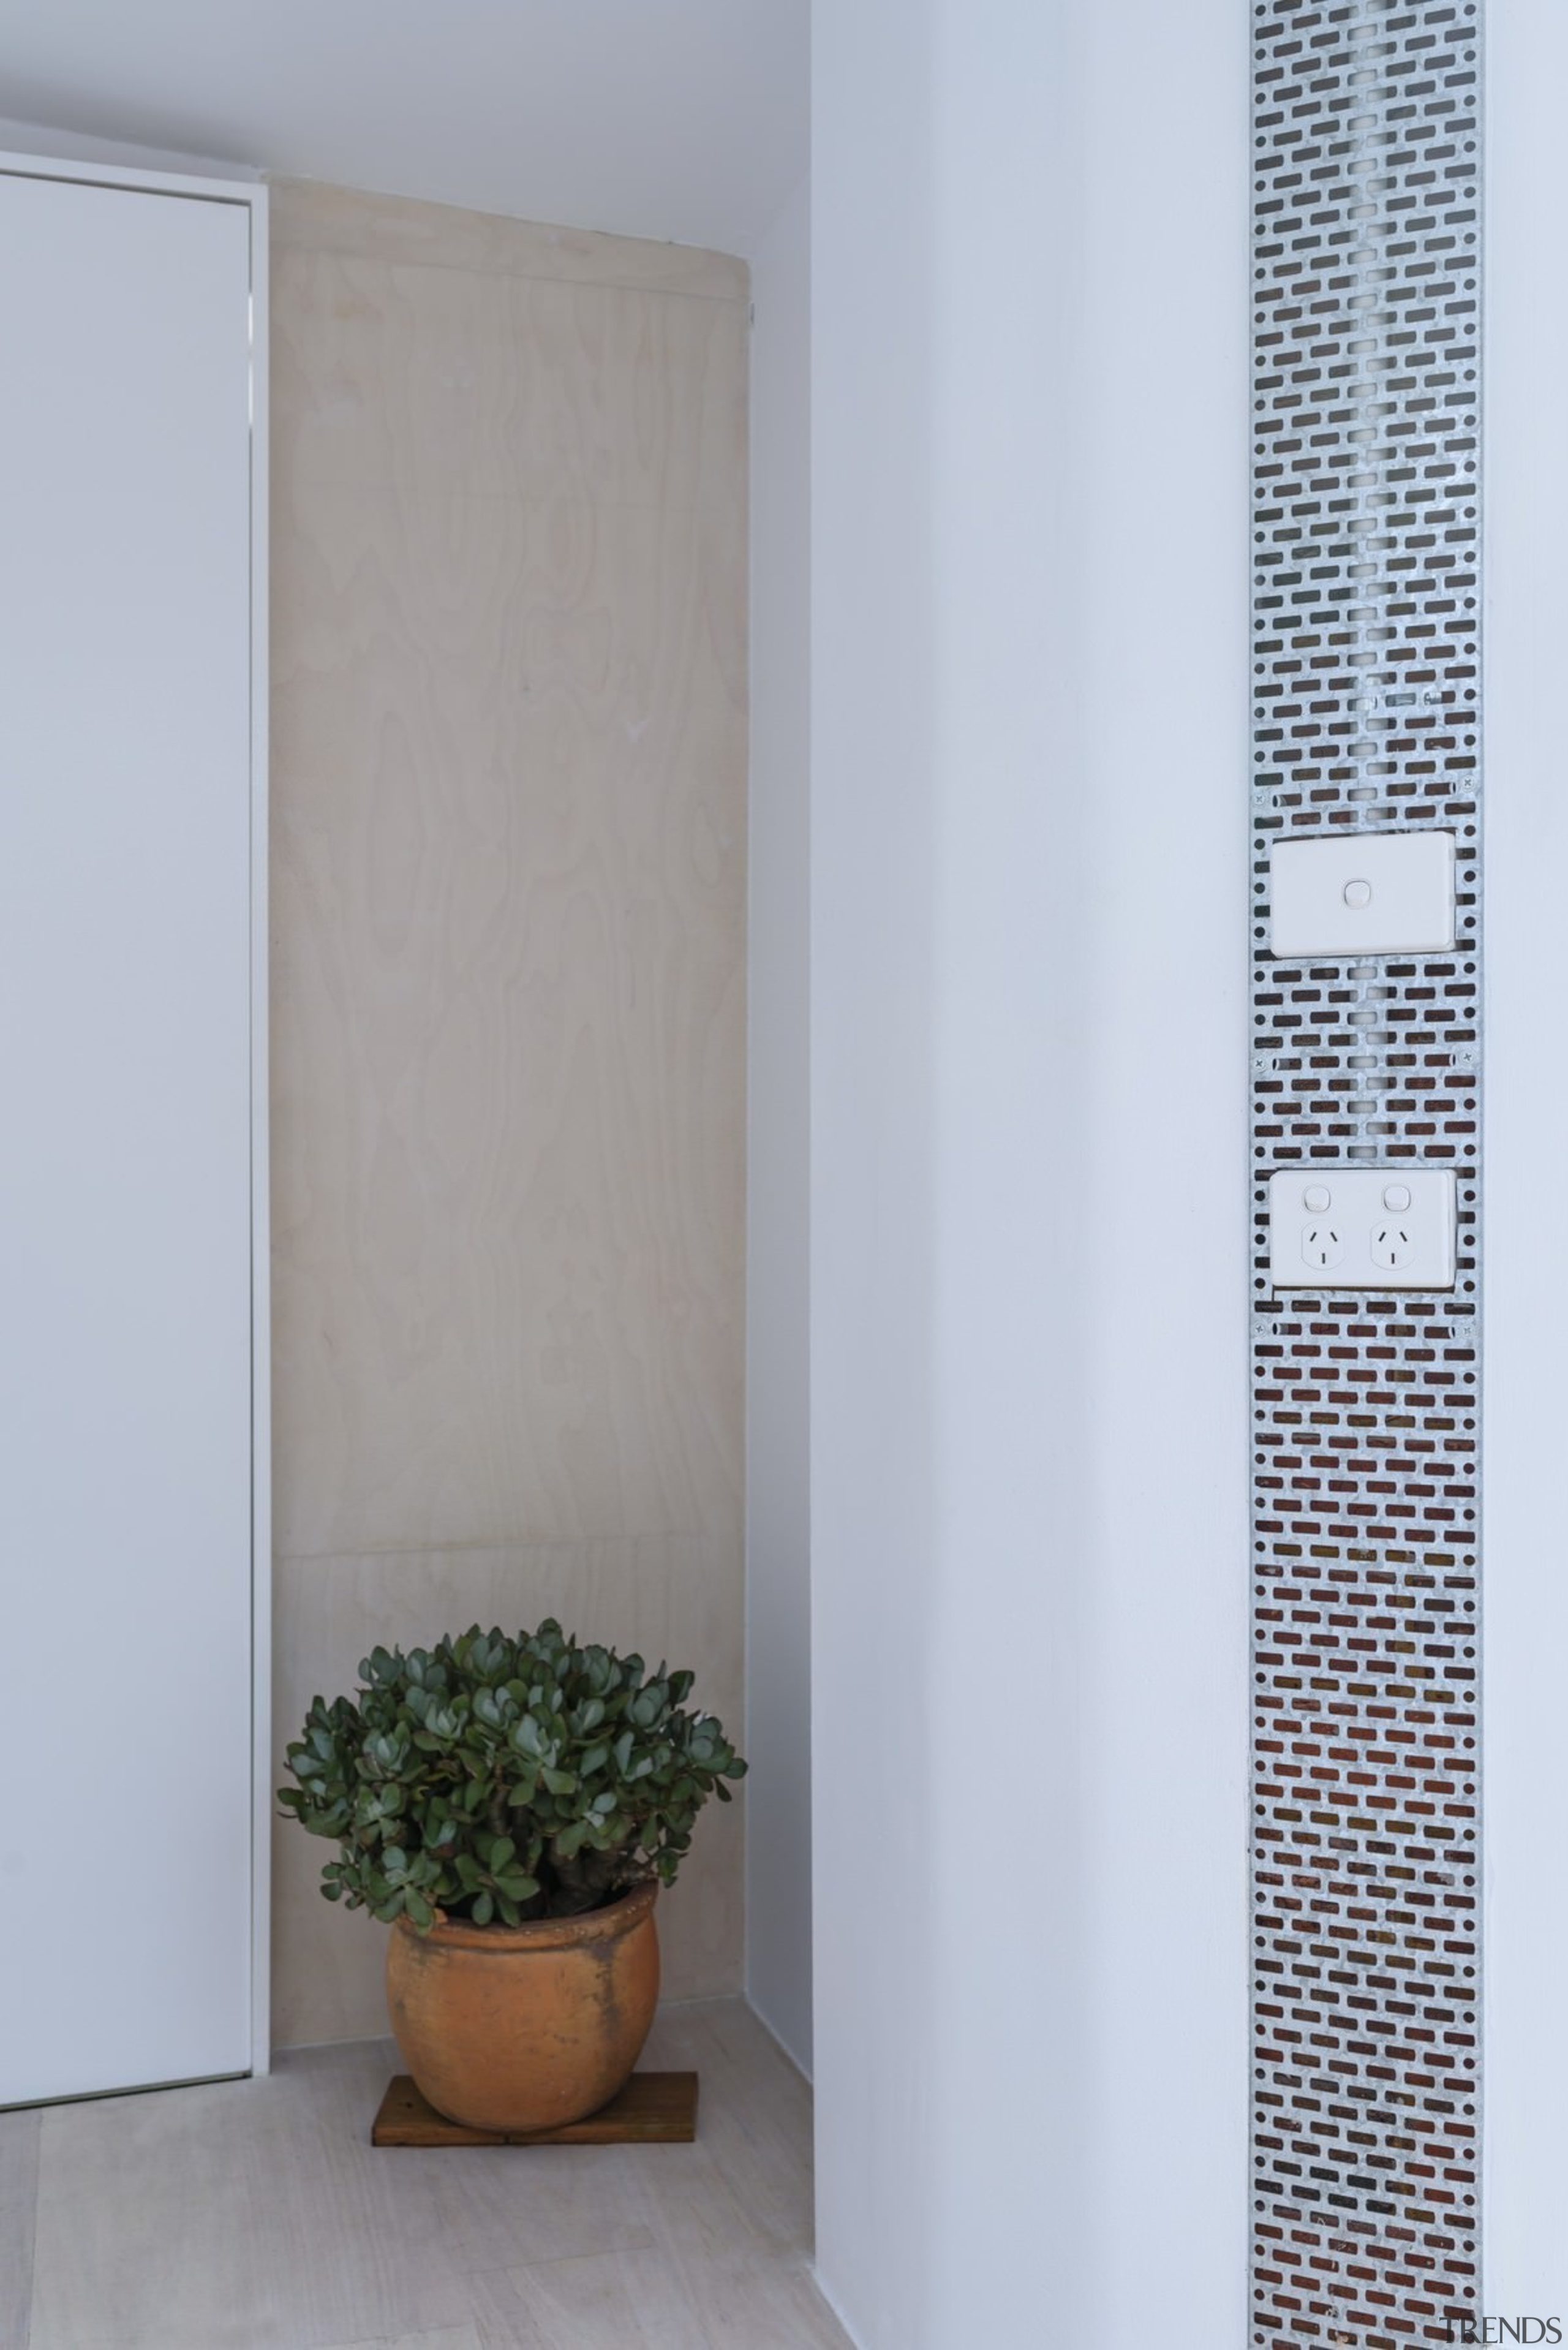 Grates hide cables - Grates hide cables - curtain, interior design, structure, window covering, window treatment, gray